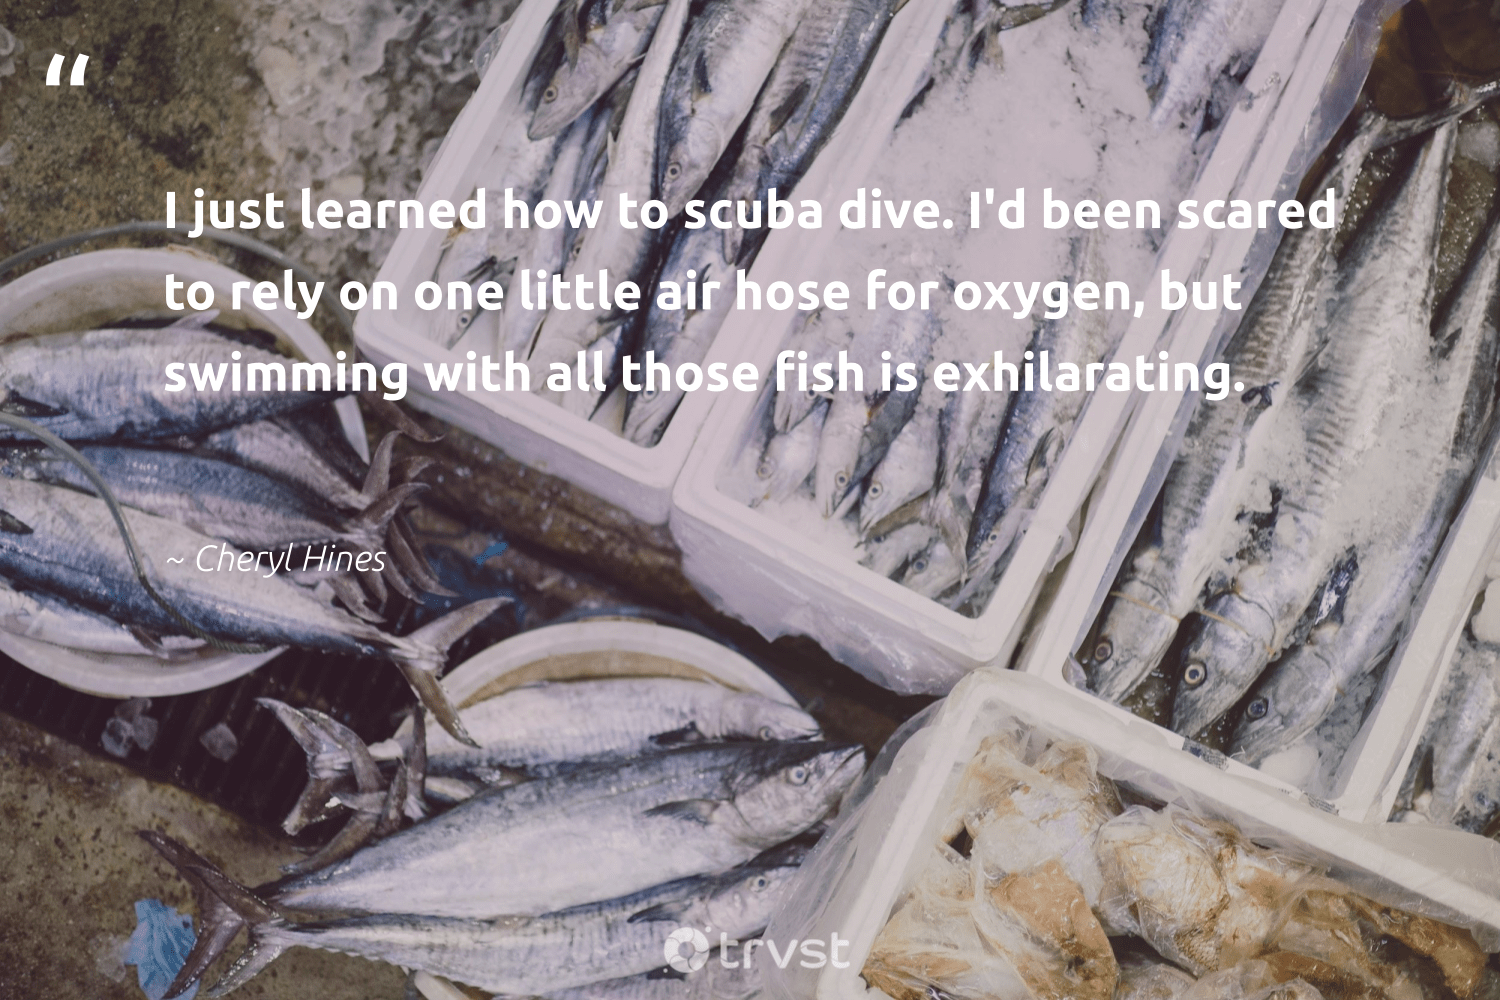 """""""I just learned how to scuba dive. I'd been scared to rely on one little air hose for oxygen, but swimming with all those fish is exhilarating.""""  - Cheryl Hines #trvst #quotes #fish #scuba #scubadiving #protectnature #natural #dogood #marine #wildlife #biology #takeaction"""